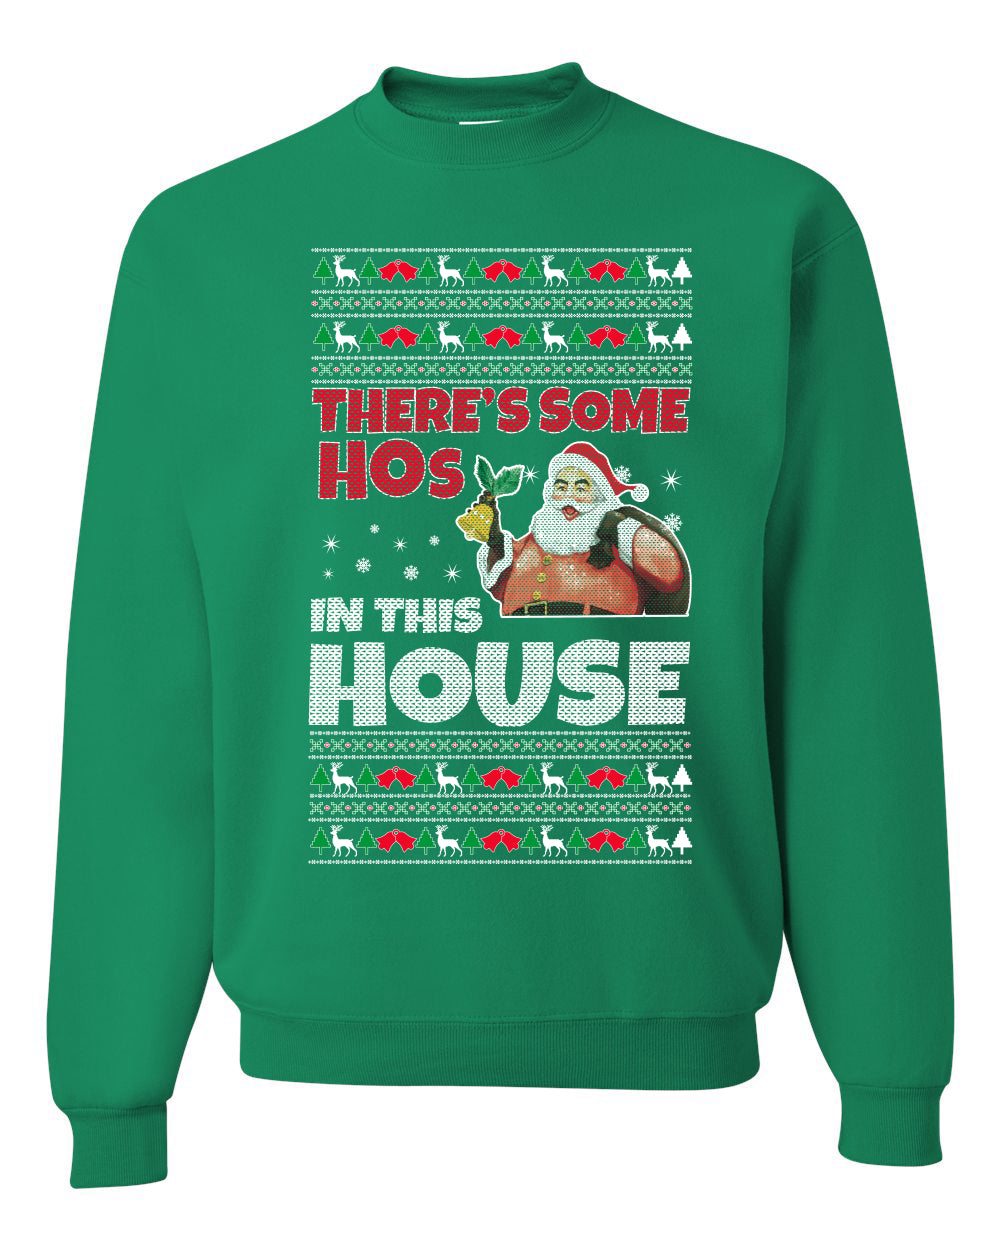 There is Some Hos in the House Christmas Unisex Crewneck Graphic Sweatshirt